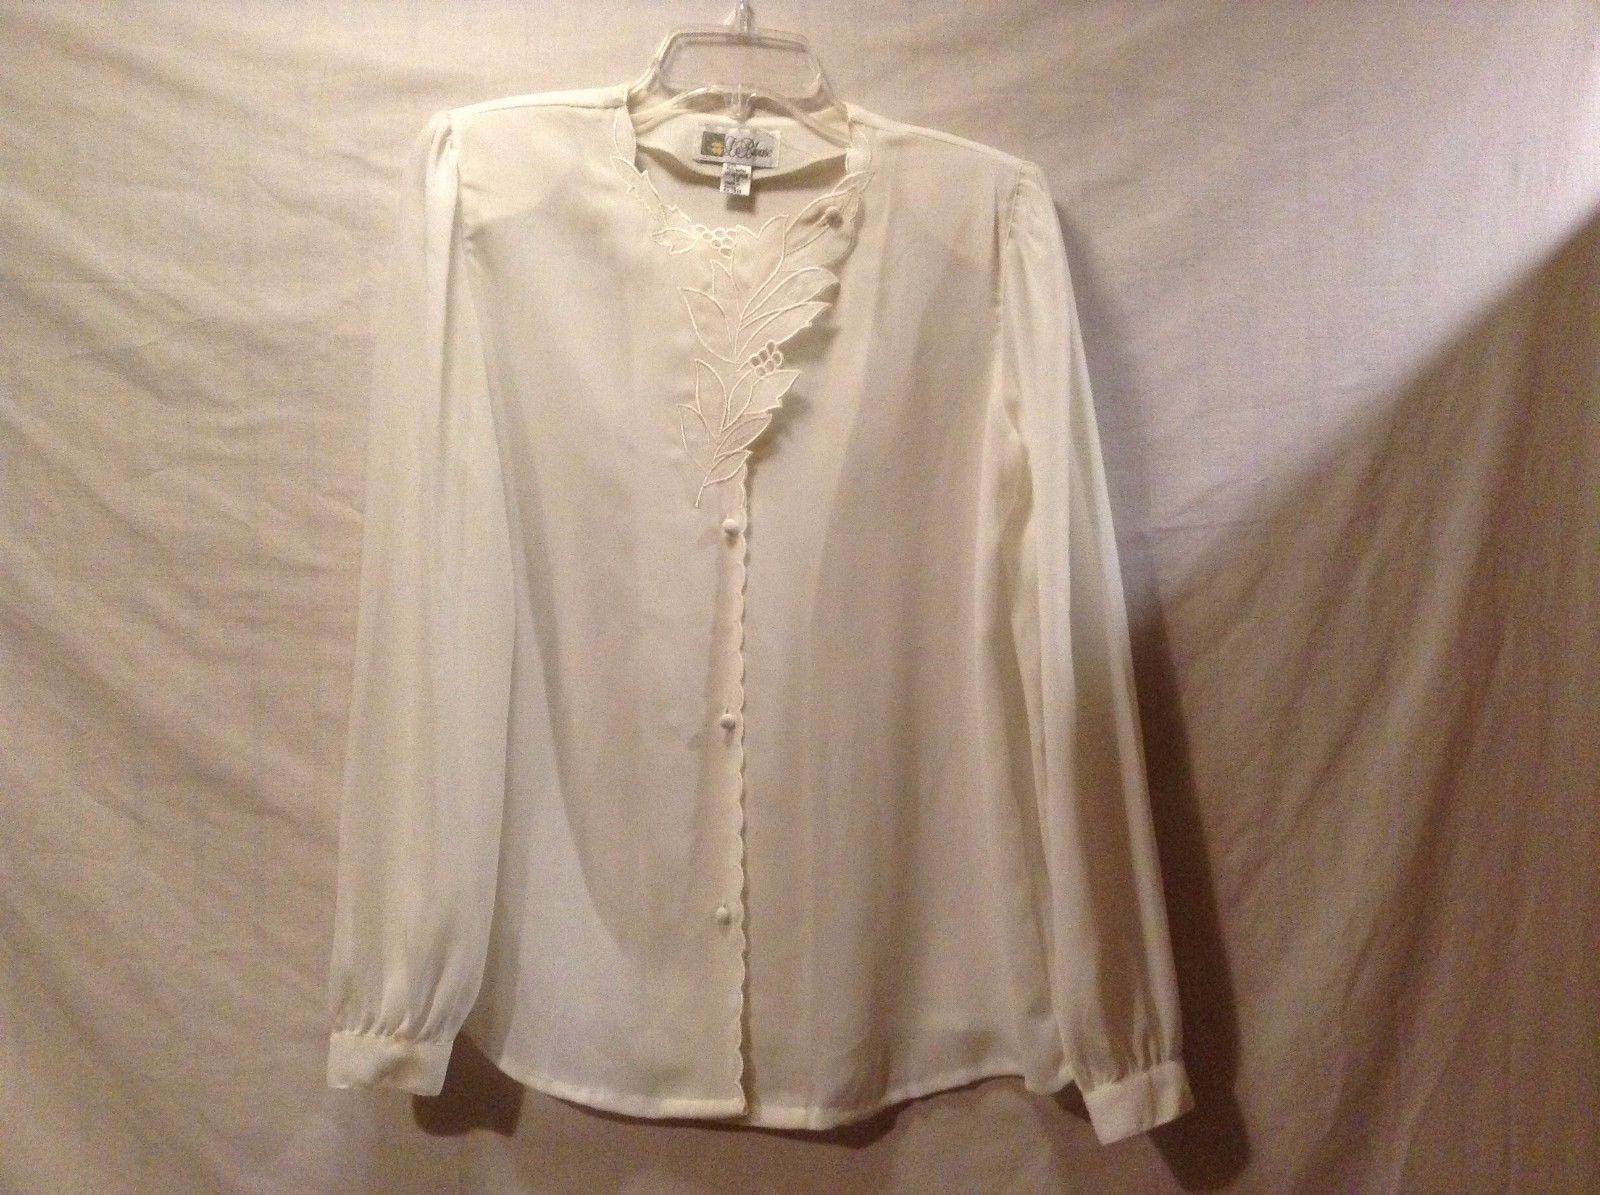 Used Great Condition La Blouse Size 10 White Leaf Collar Button Up Sheer Blouse